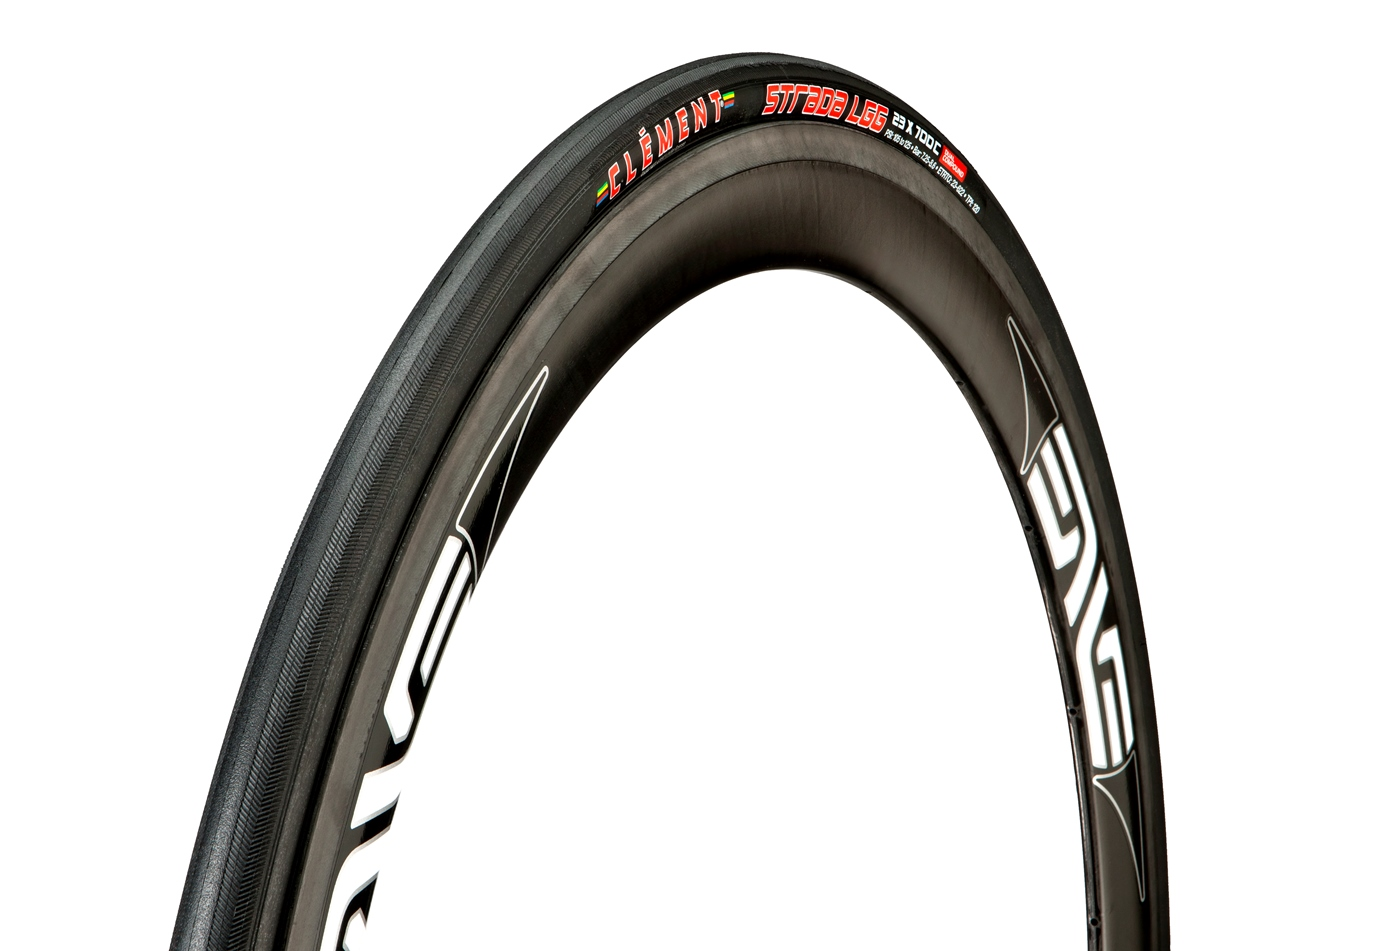 Clement Strada LGG Wire Bead Tires